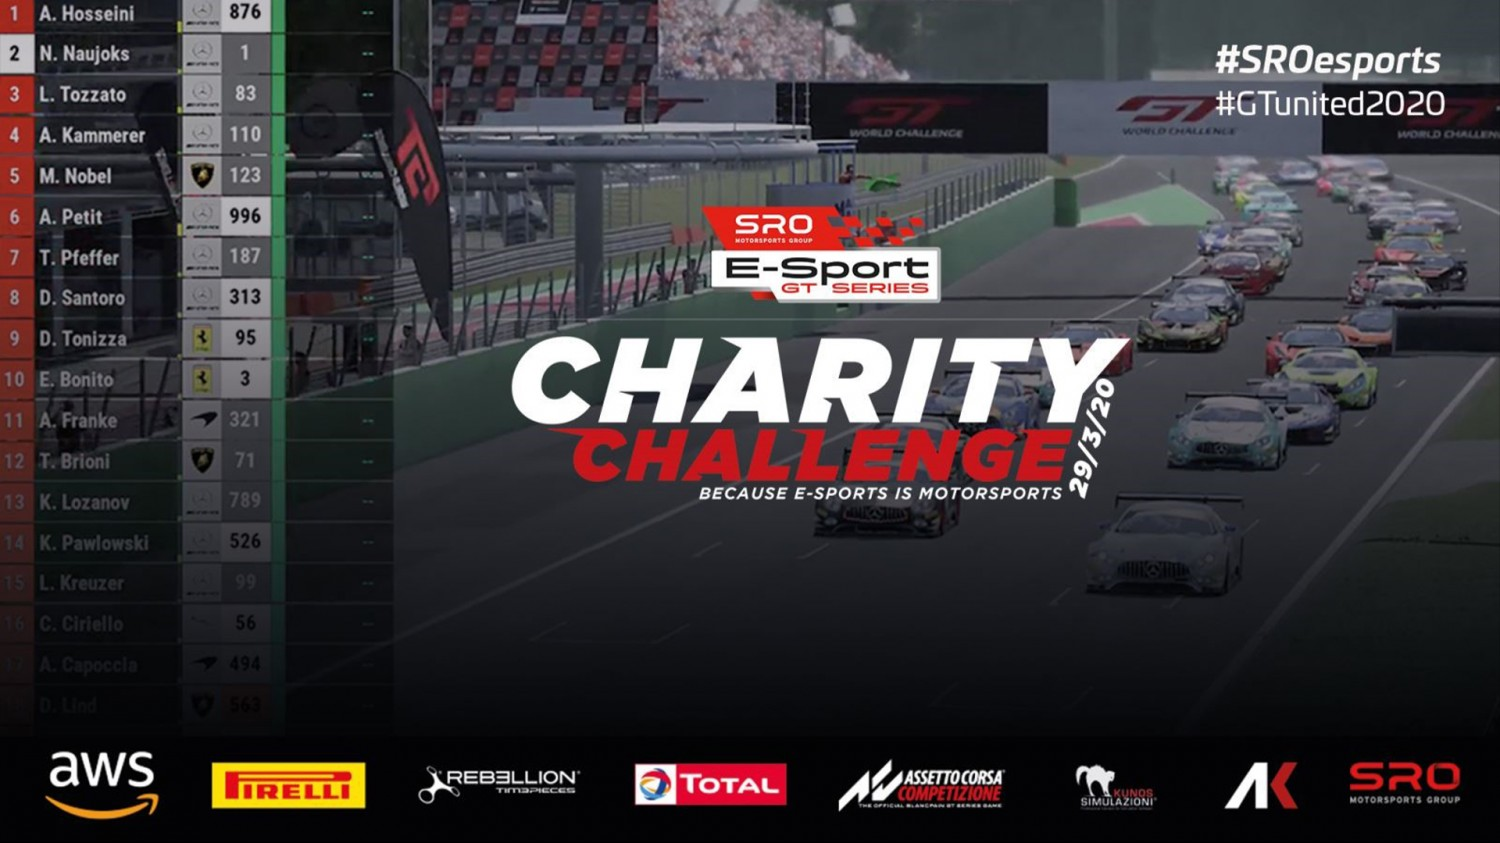 Kammerer claims victory in SRO E-Sport GT Series Charity Challenge race at Monza